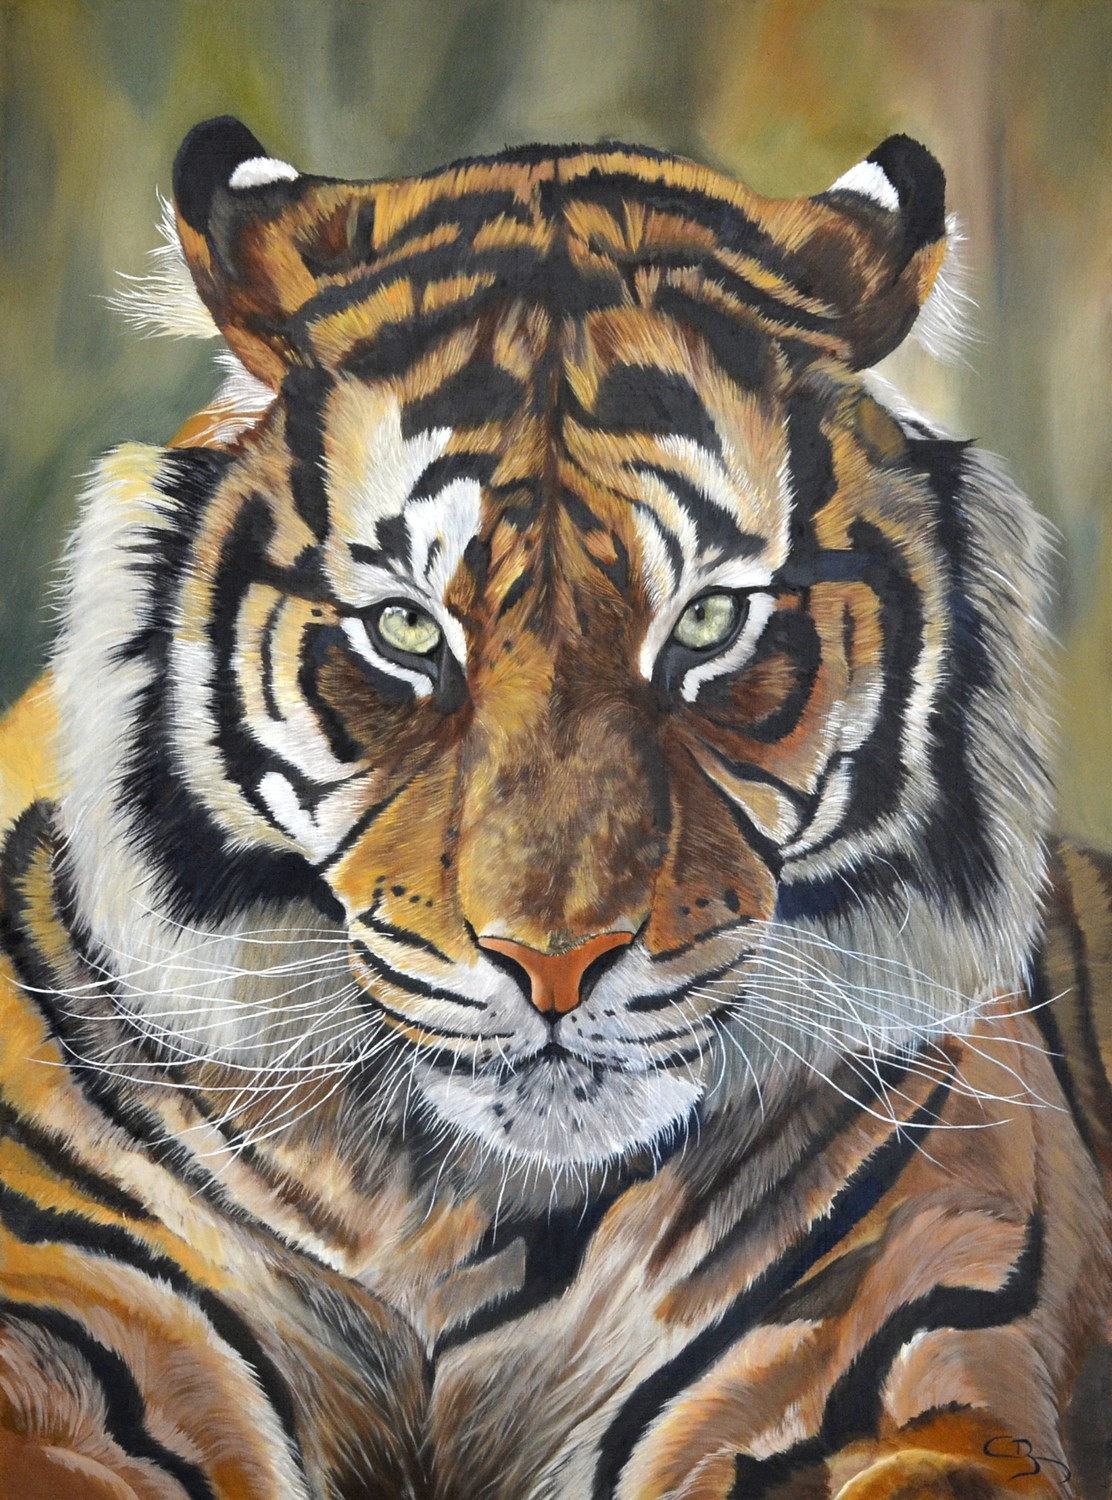 Peinture animali re artiste animalier for Artiste animalier